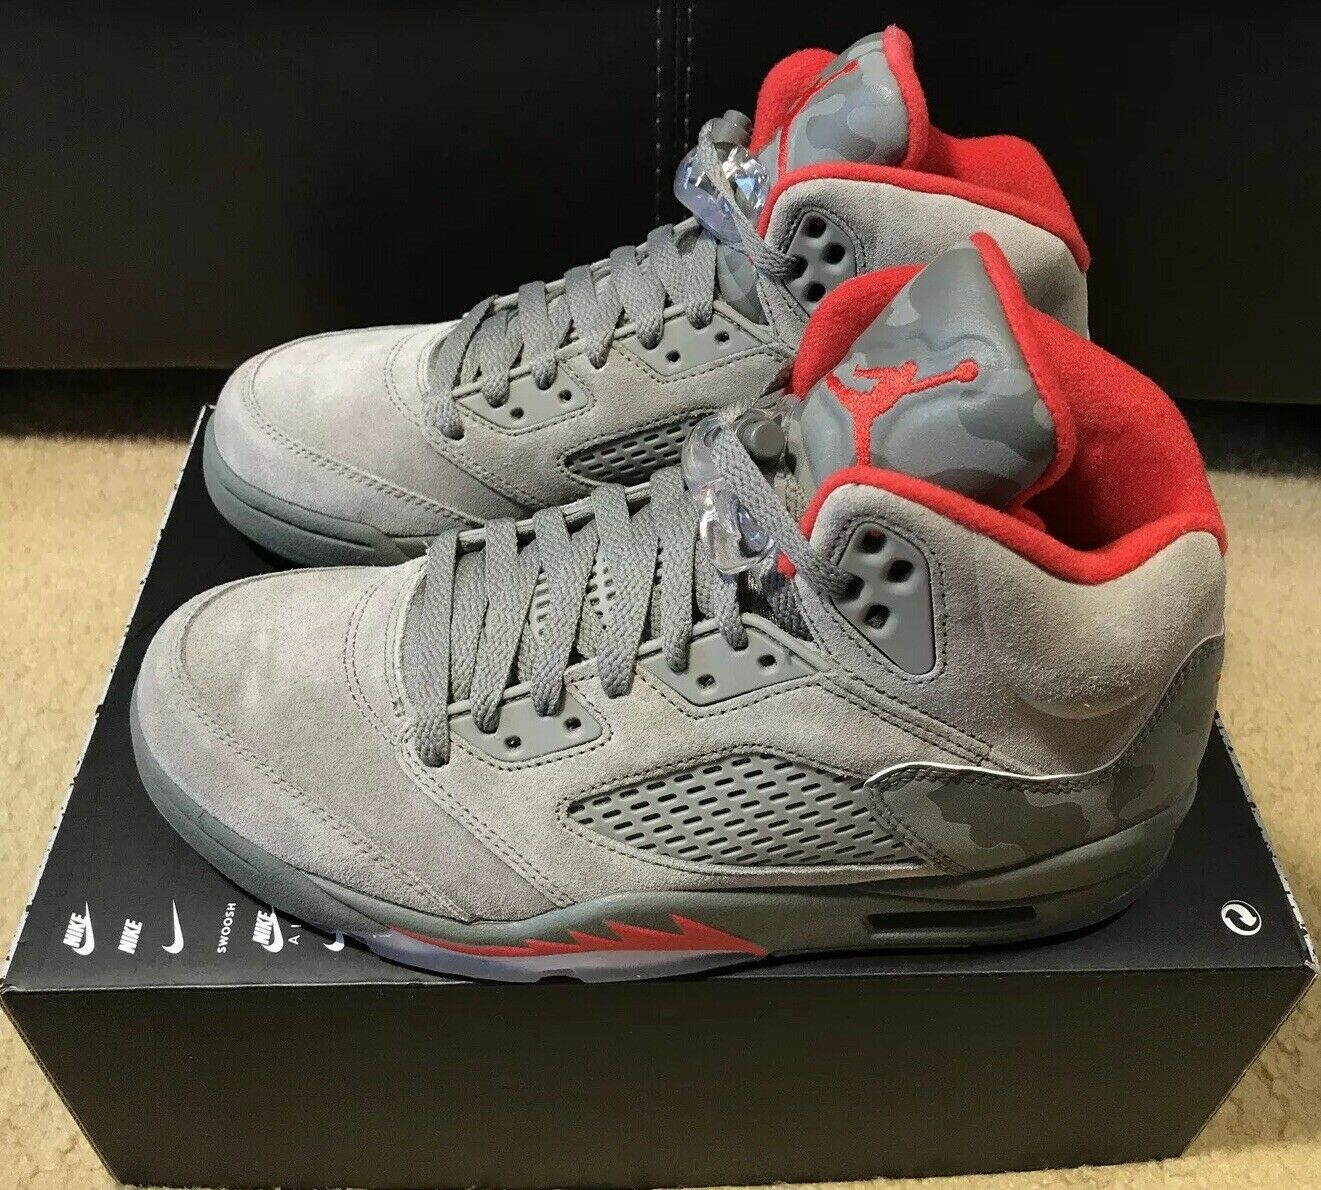 official photos 11621 65ab5 Nike Air Jordan 5 Retro Reflective Reflective Reflective Camo Men s sz 8 Dark  Stucco Red 136027 051 b173d1